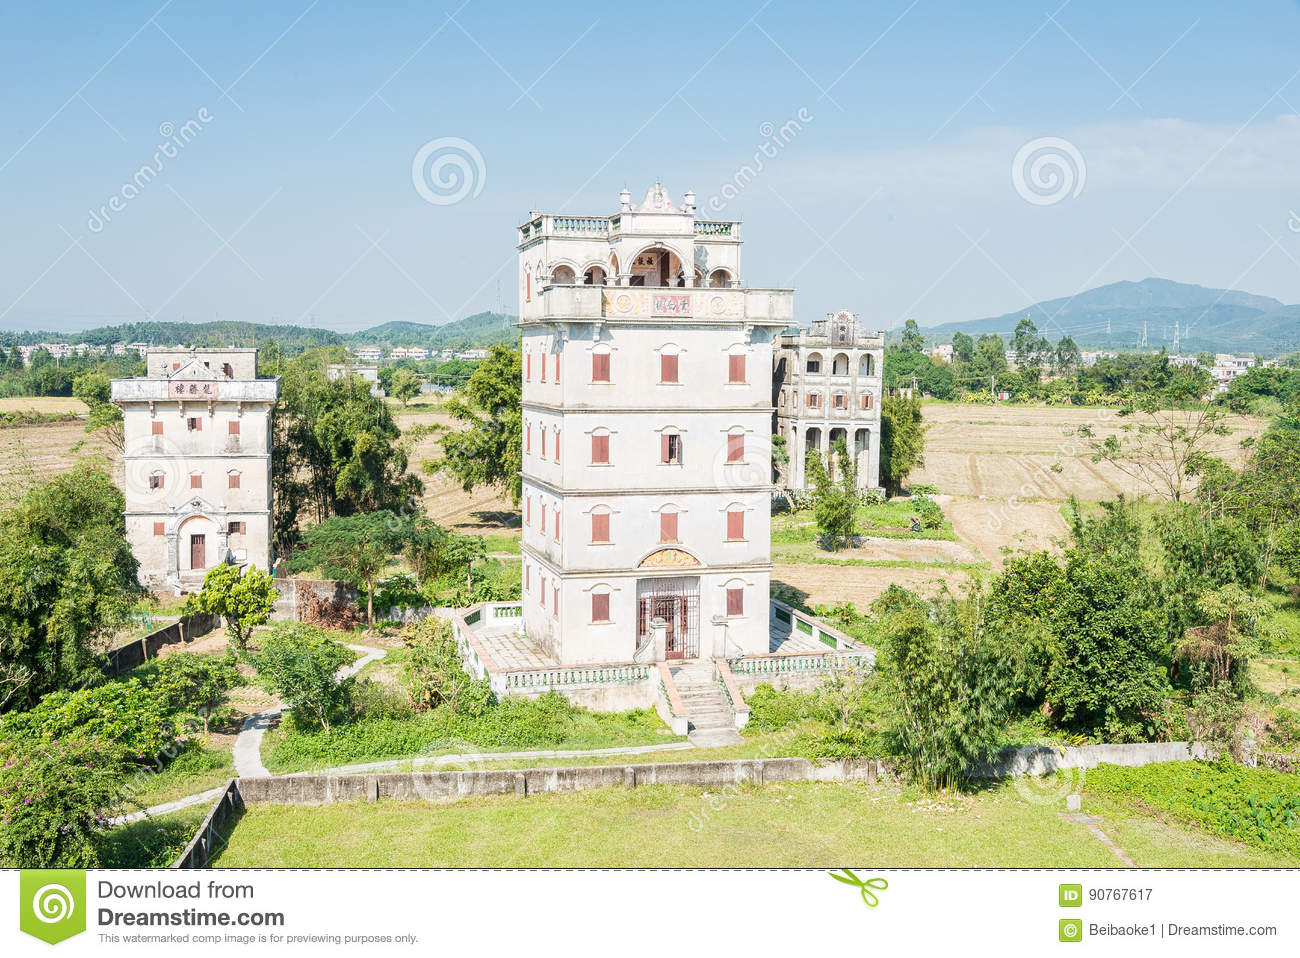 GUNAGDONG, CHINA - Dec 17 2015: Zili Village (UNESCO World Heritage site). a famous historic site in Kaiping, Guangdong, China.